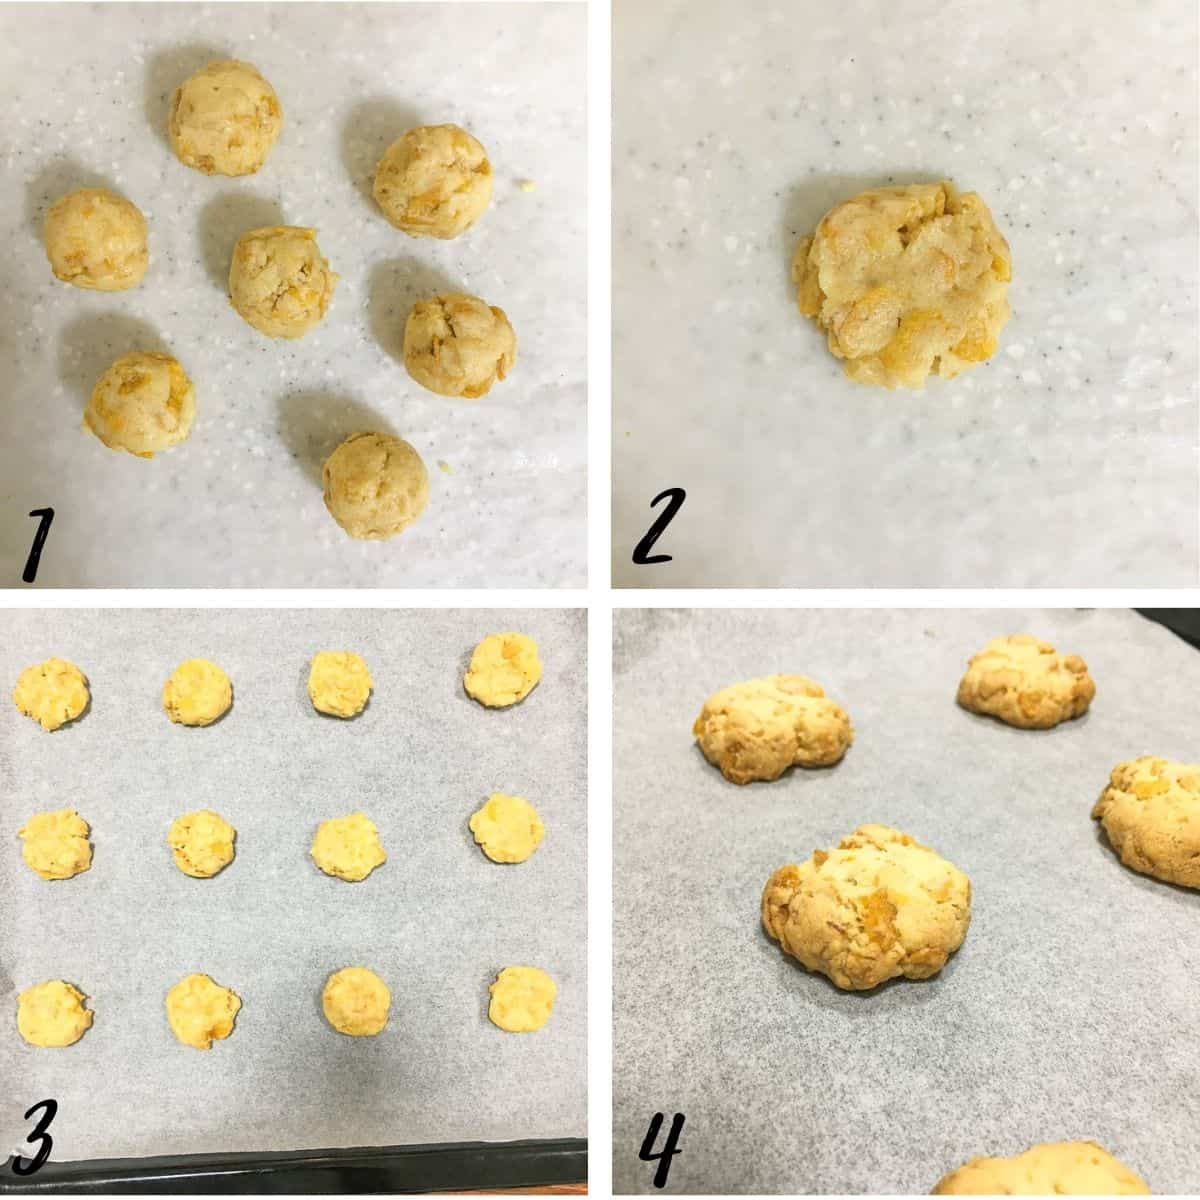 A poster of 4 images show how to shape and bake cookies